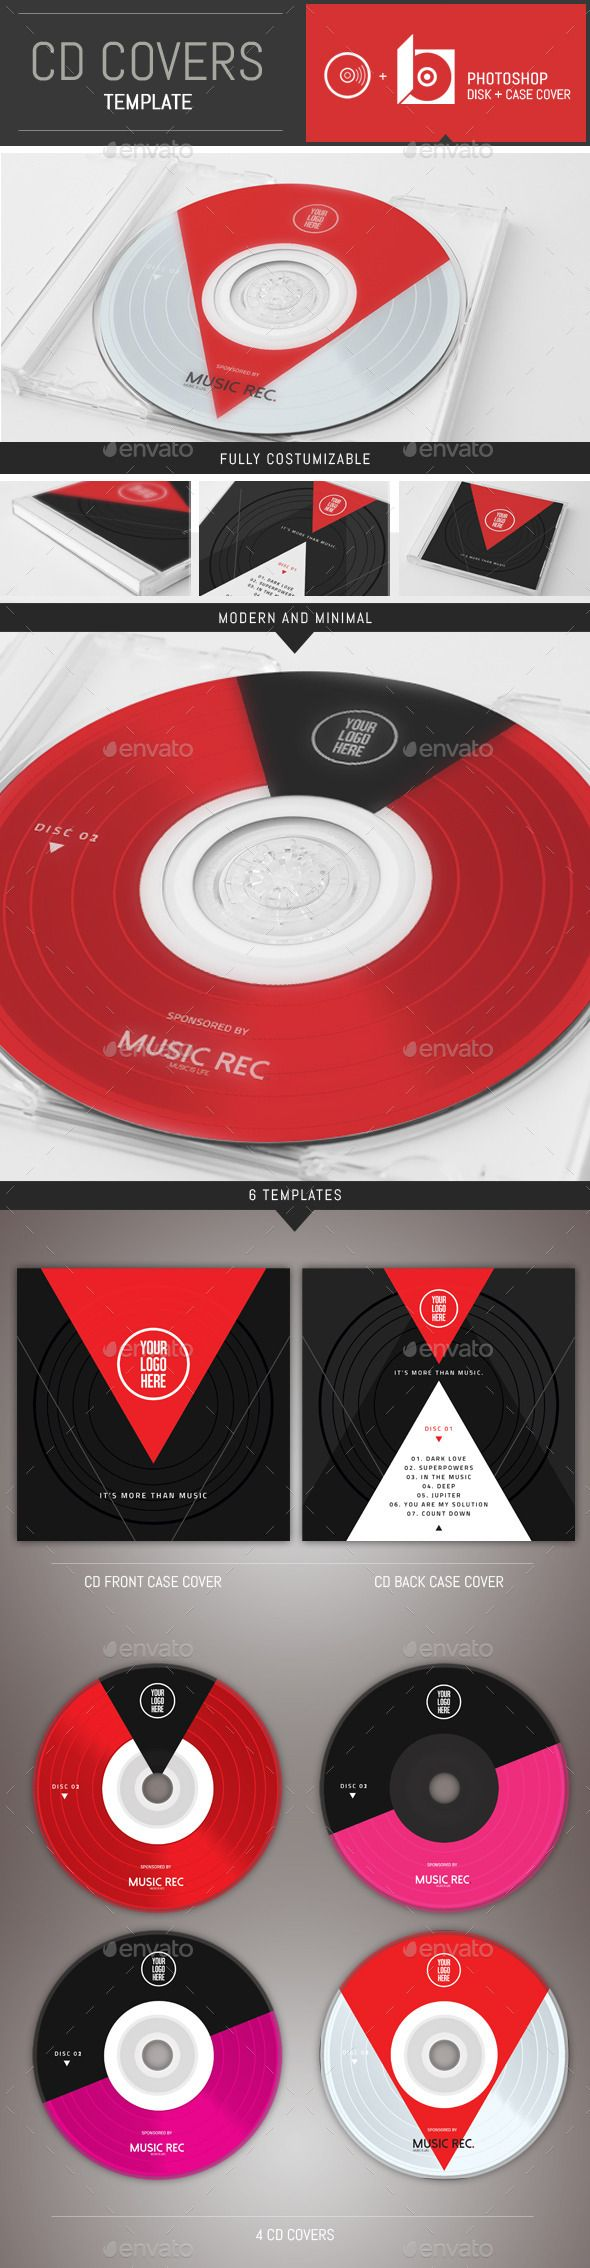 Minimal Music CD Cover Template - CD & DVD Artwork Print Templates